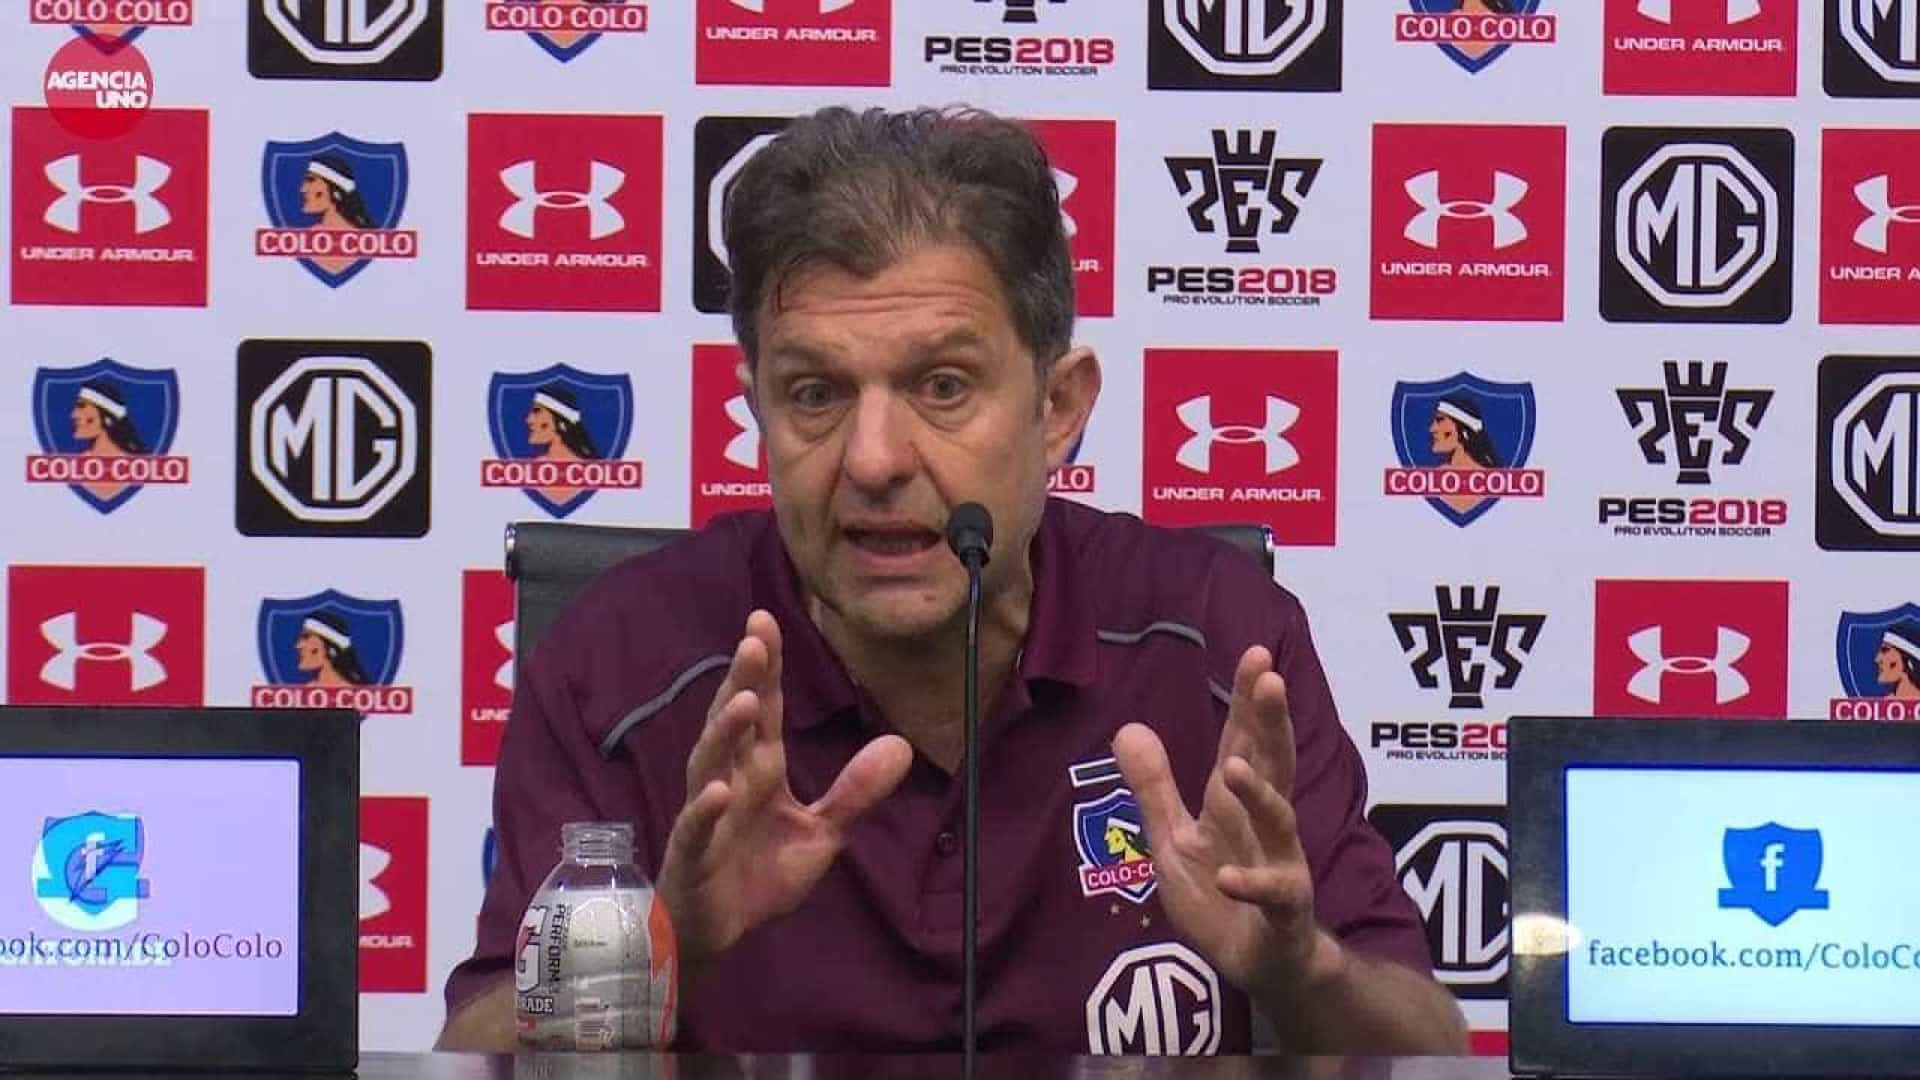 Presidente do Colo-Colo é preso após brigar com governador no Chile